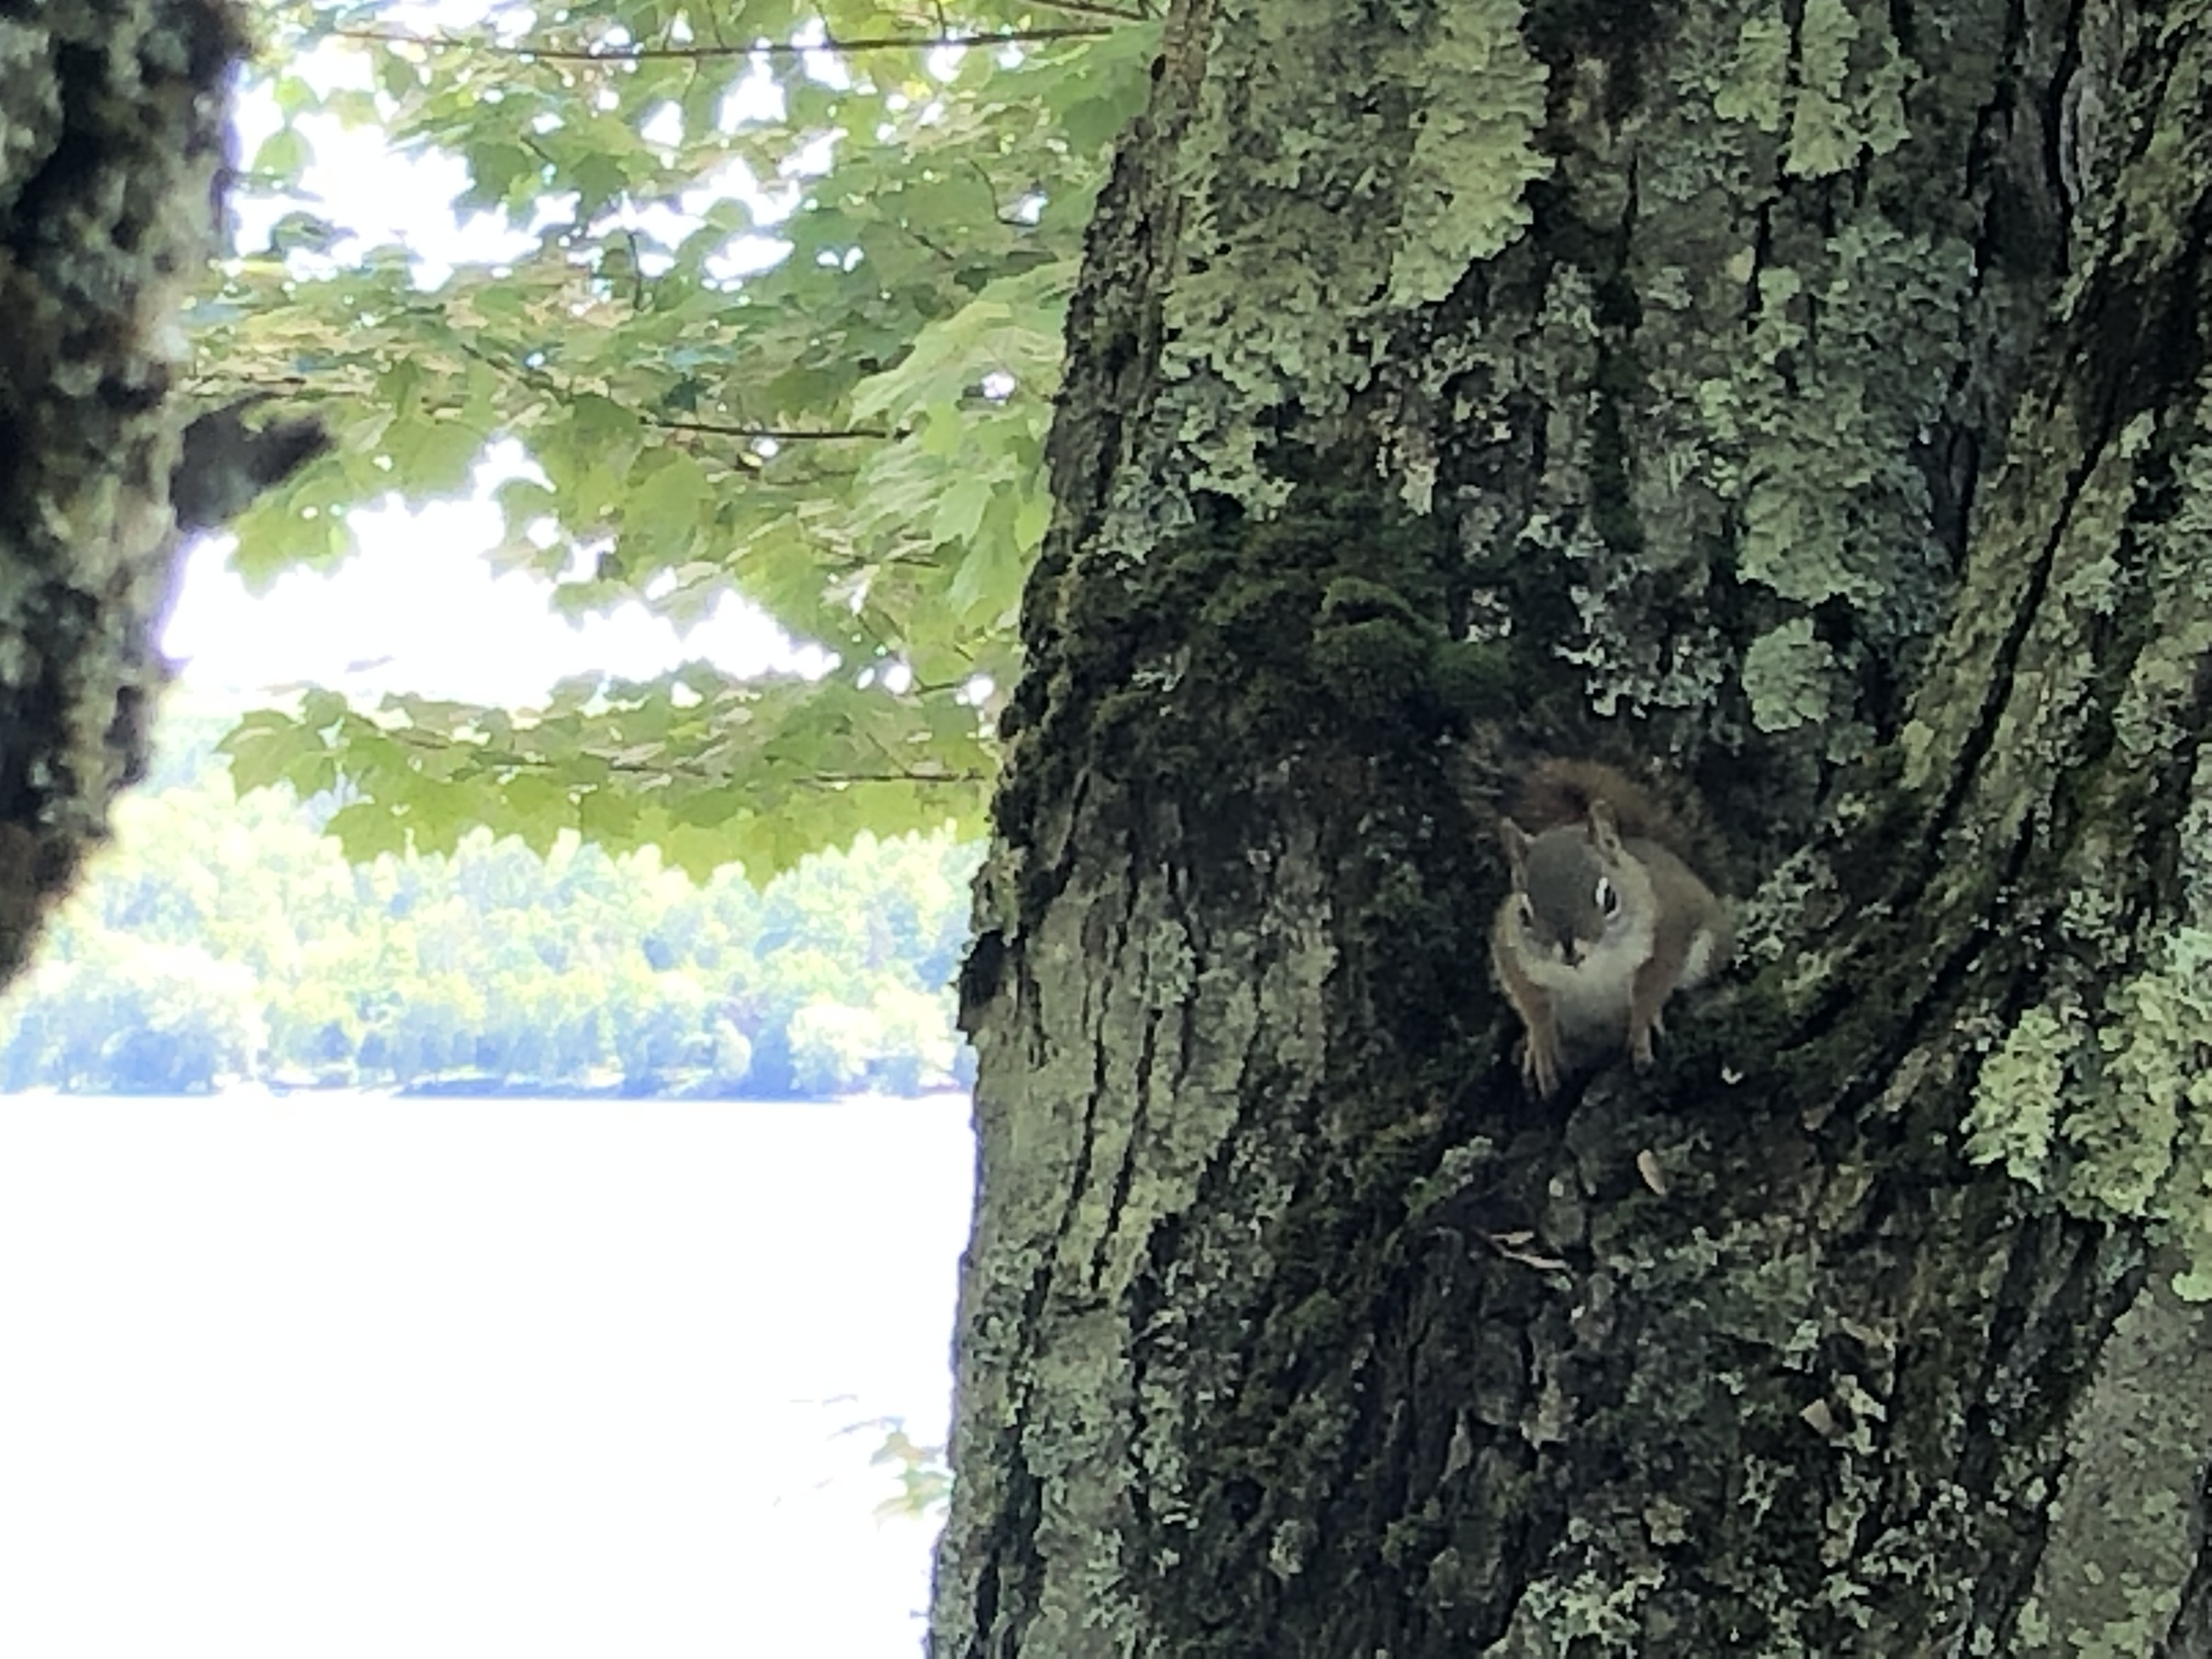 squirrel perched in a tree looking at the camera